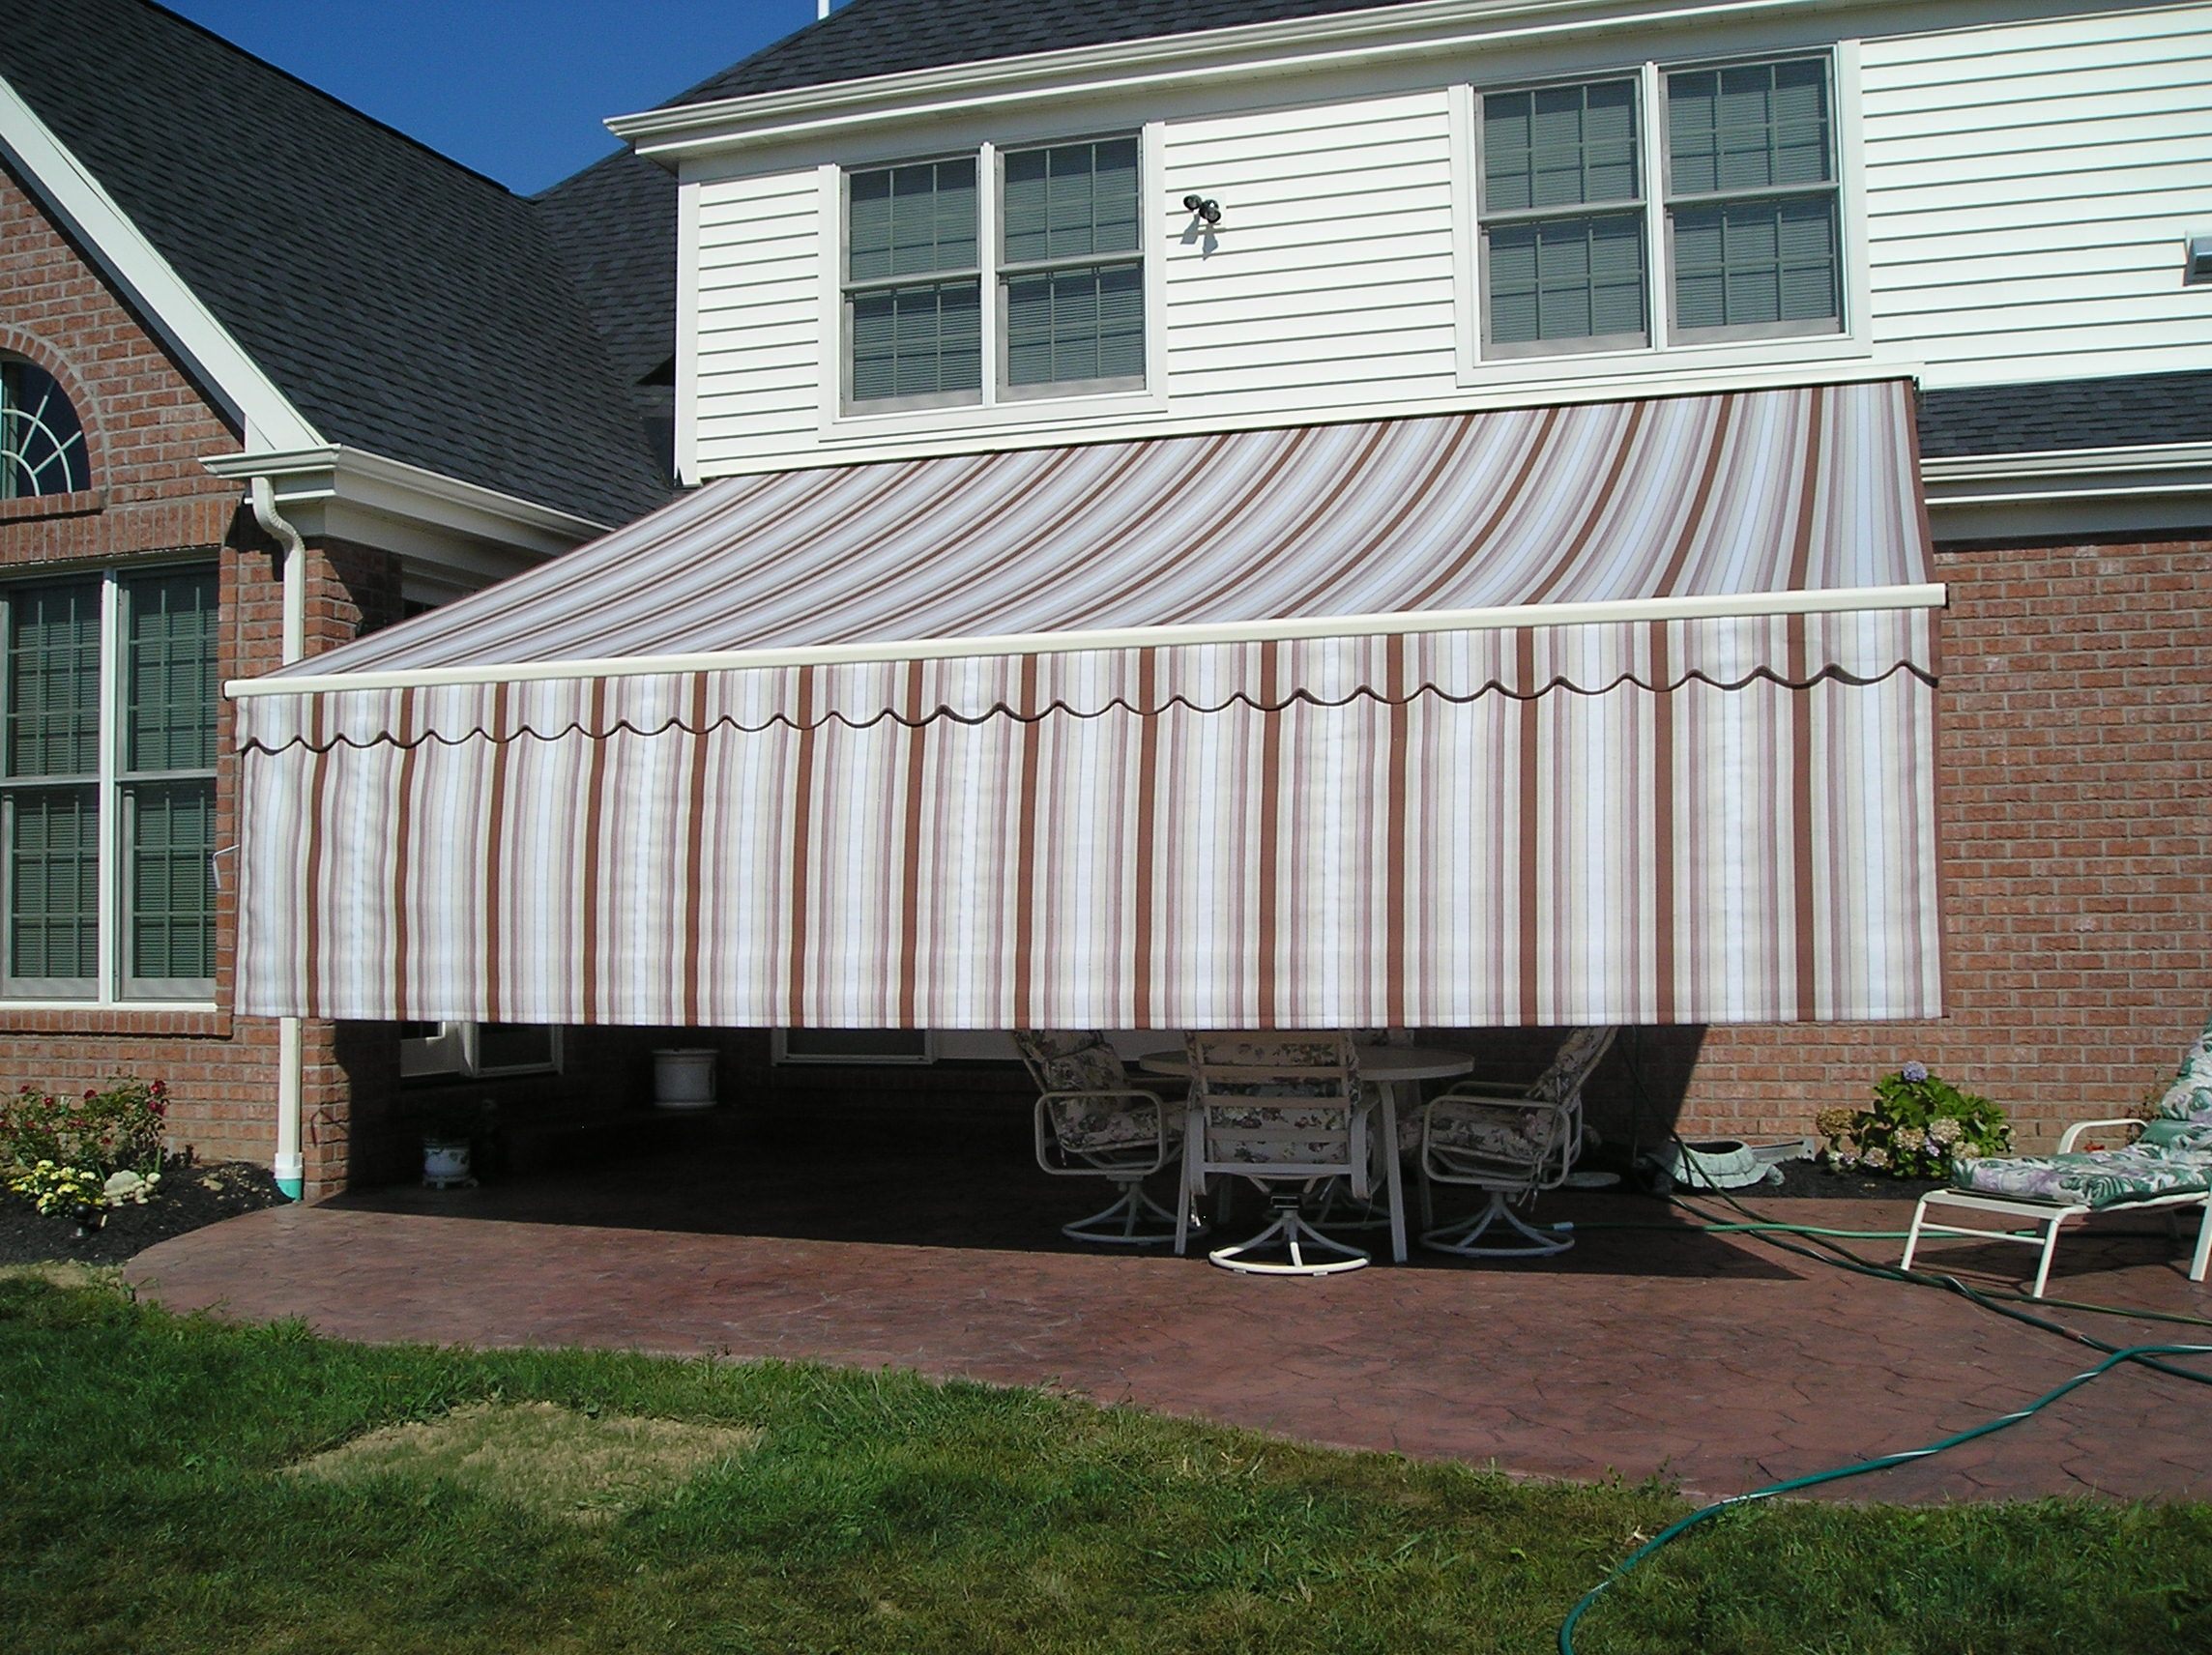 Sunair Retractable Awning With Drop Curtain On End From Thomas V. Giel  Corporation 800